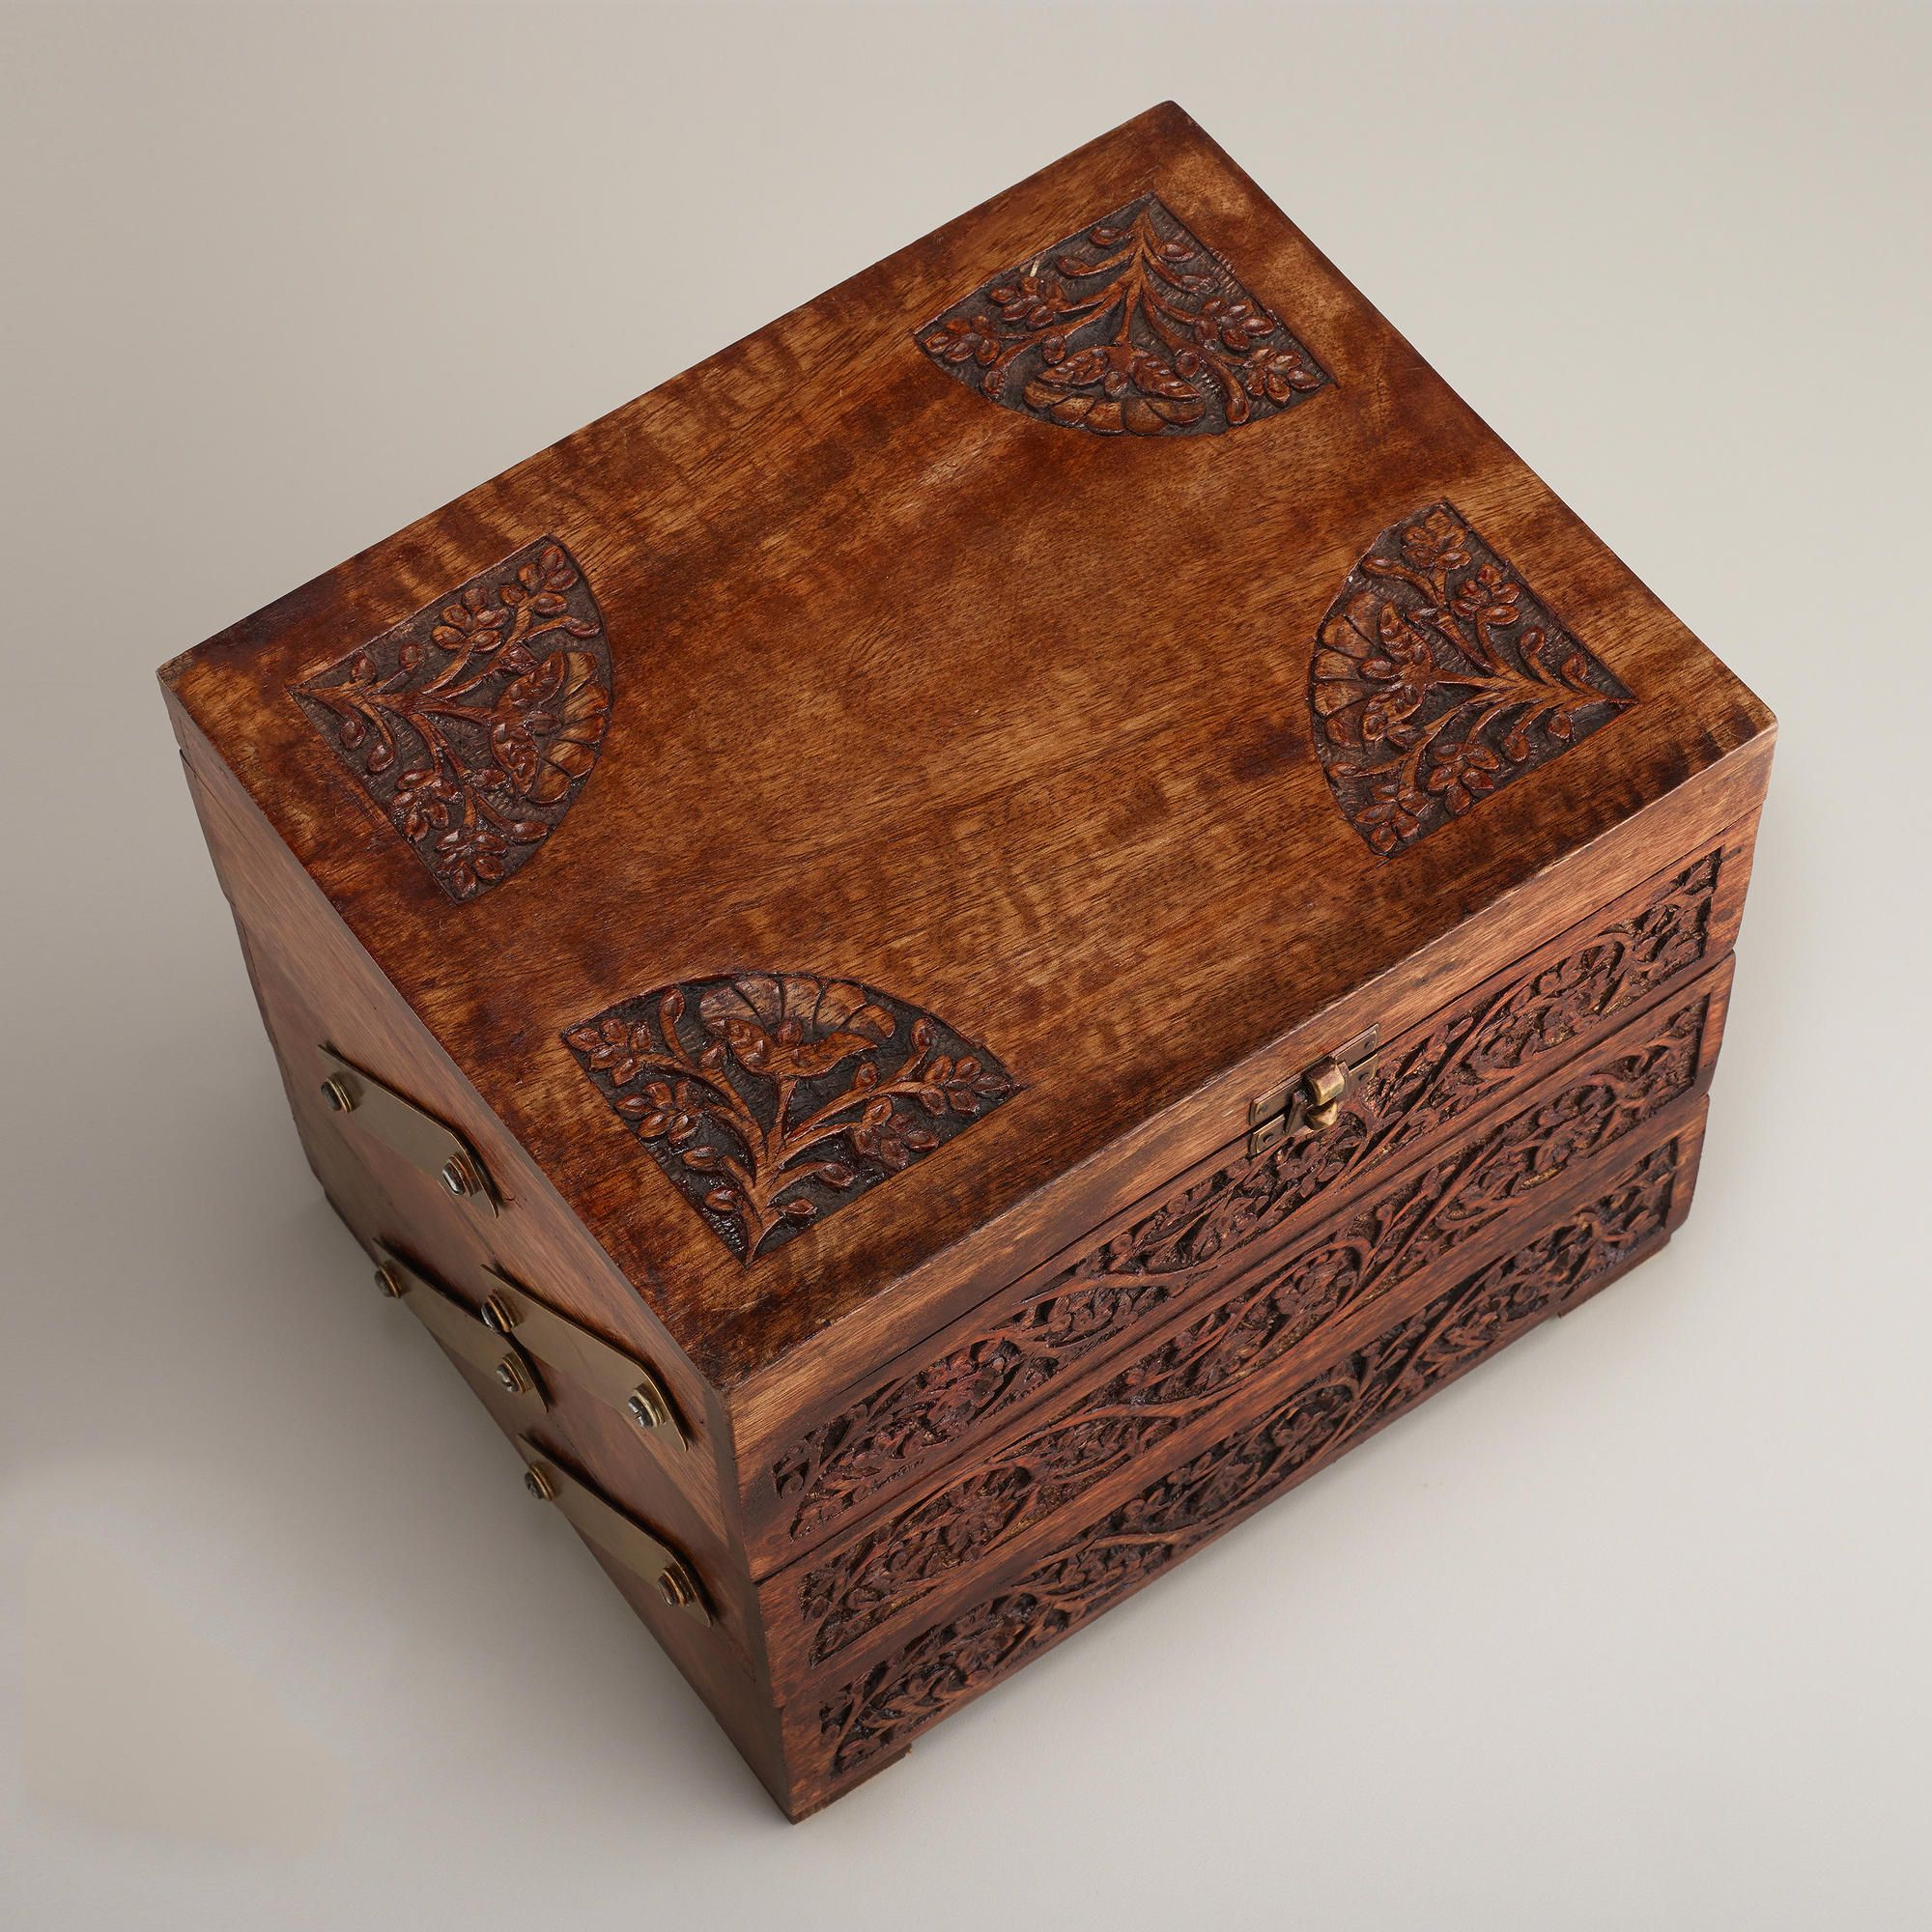 World Market Jewelry Box Stunning Carved Wood Tiered Jewelry Box  World Market  Fashion And Style Design Inspiration